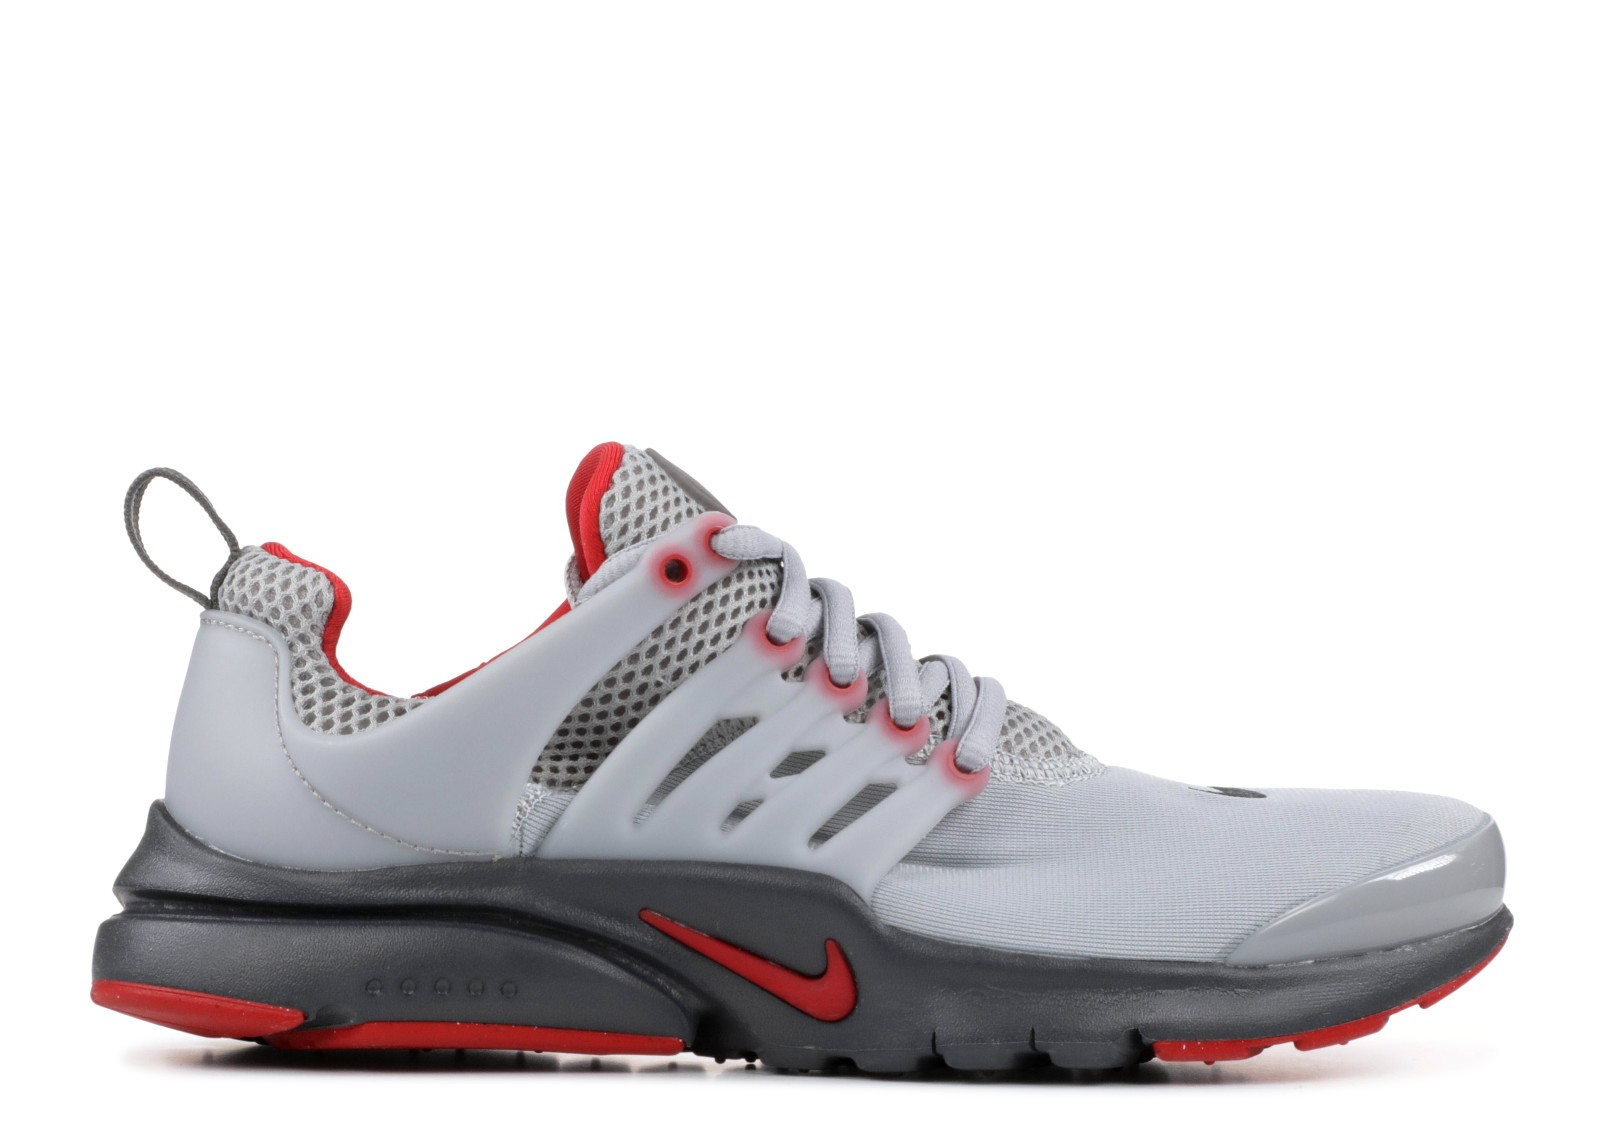 new product 6c9c2 935d6 Prev Nike Presto Gs Gym Wolf Grey Red Anthracite ...